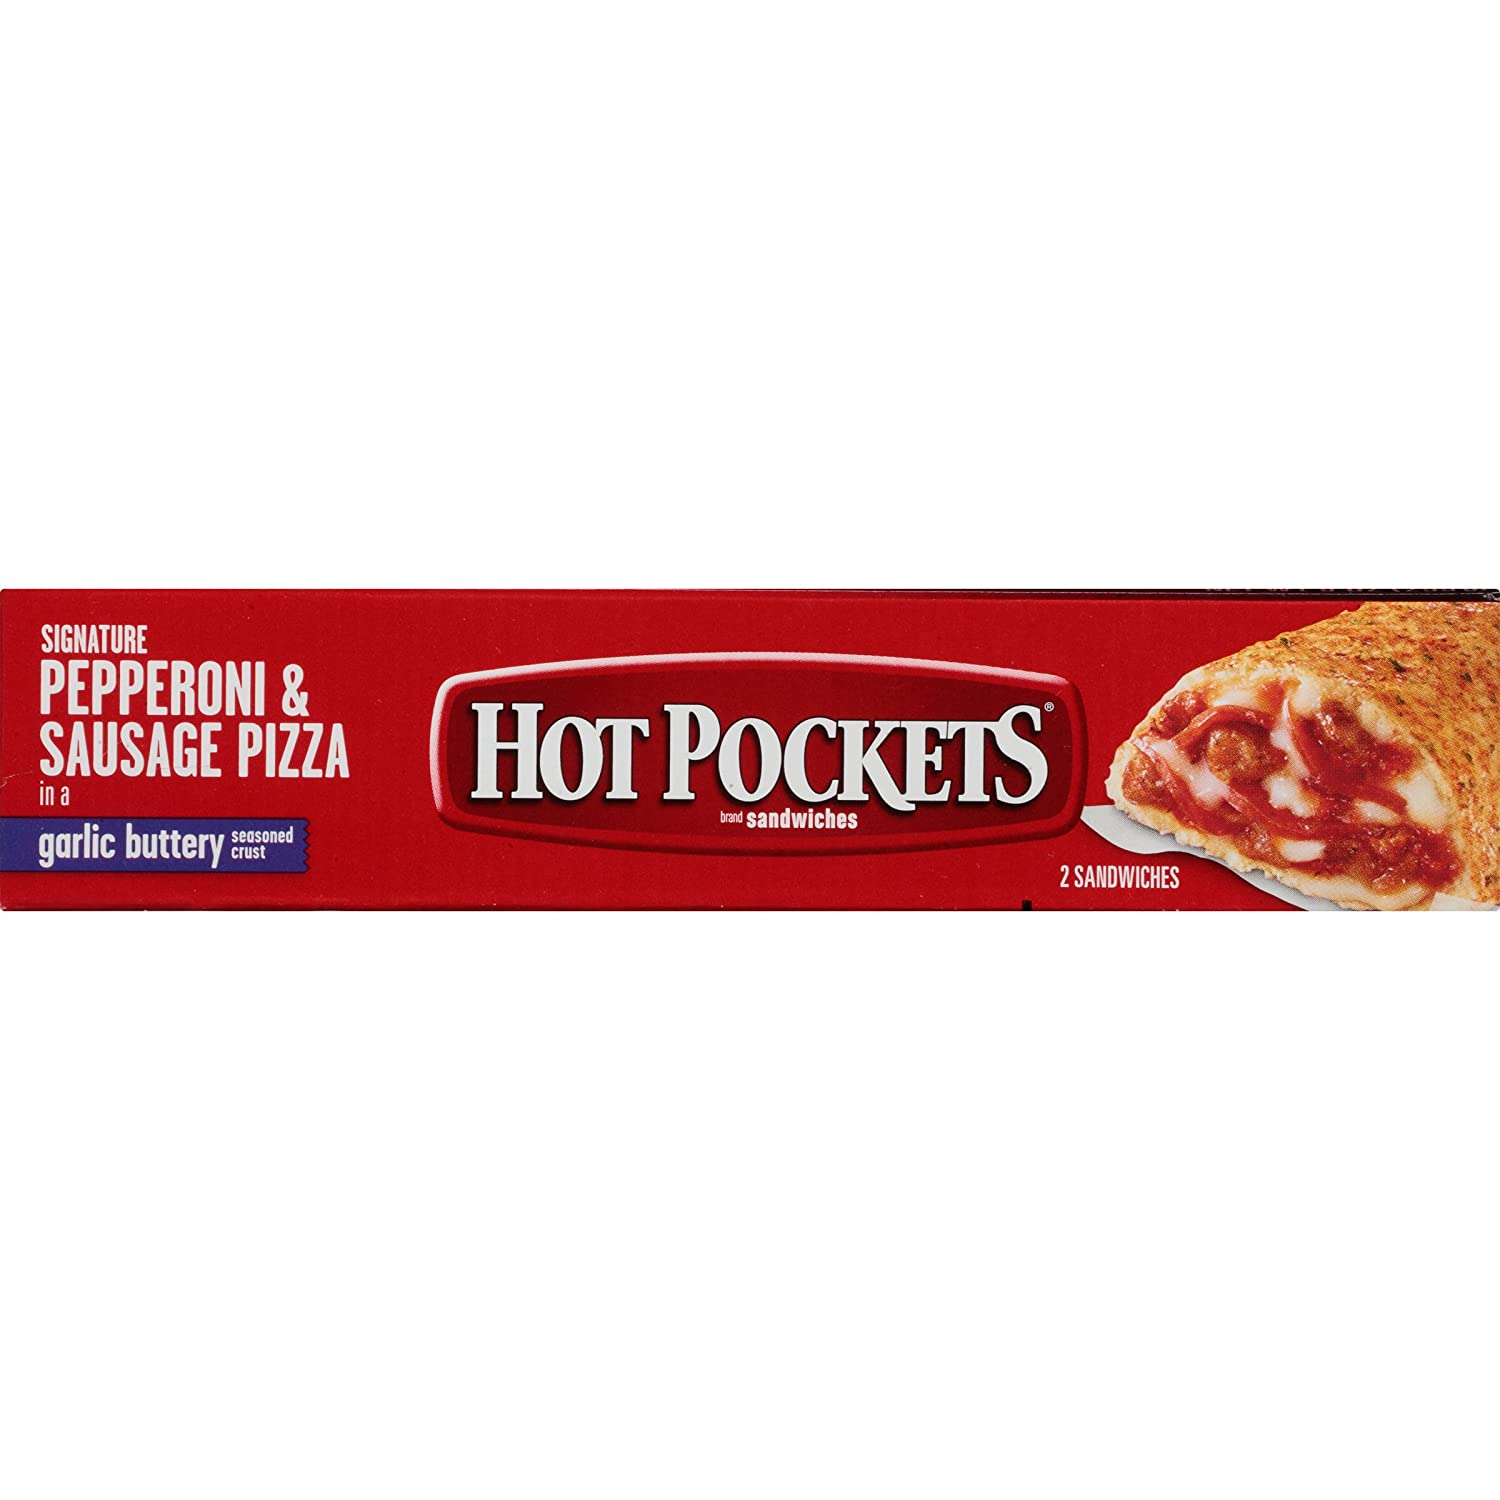 HOT POCKETS Frozen Sandwiches Pepperoni & Sausage Pizza 2-Pack: Amazon.com: Grocery & Gourmet Food